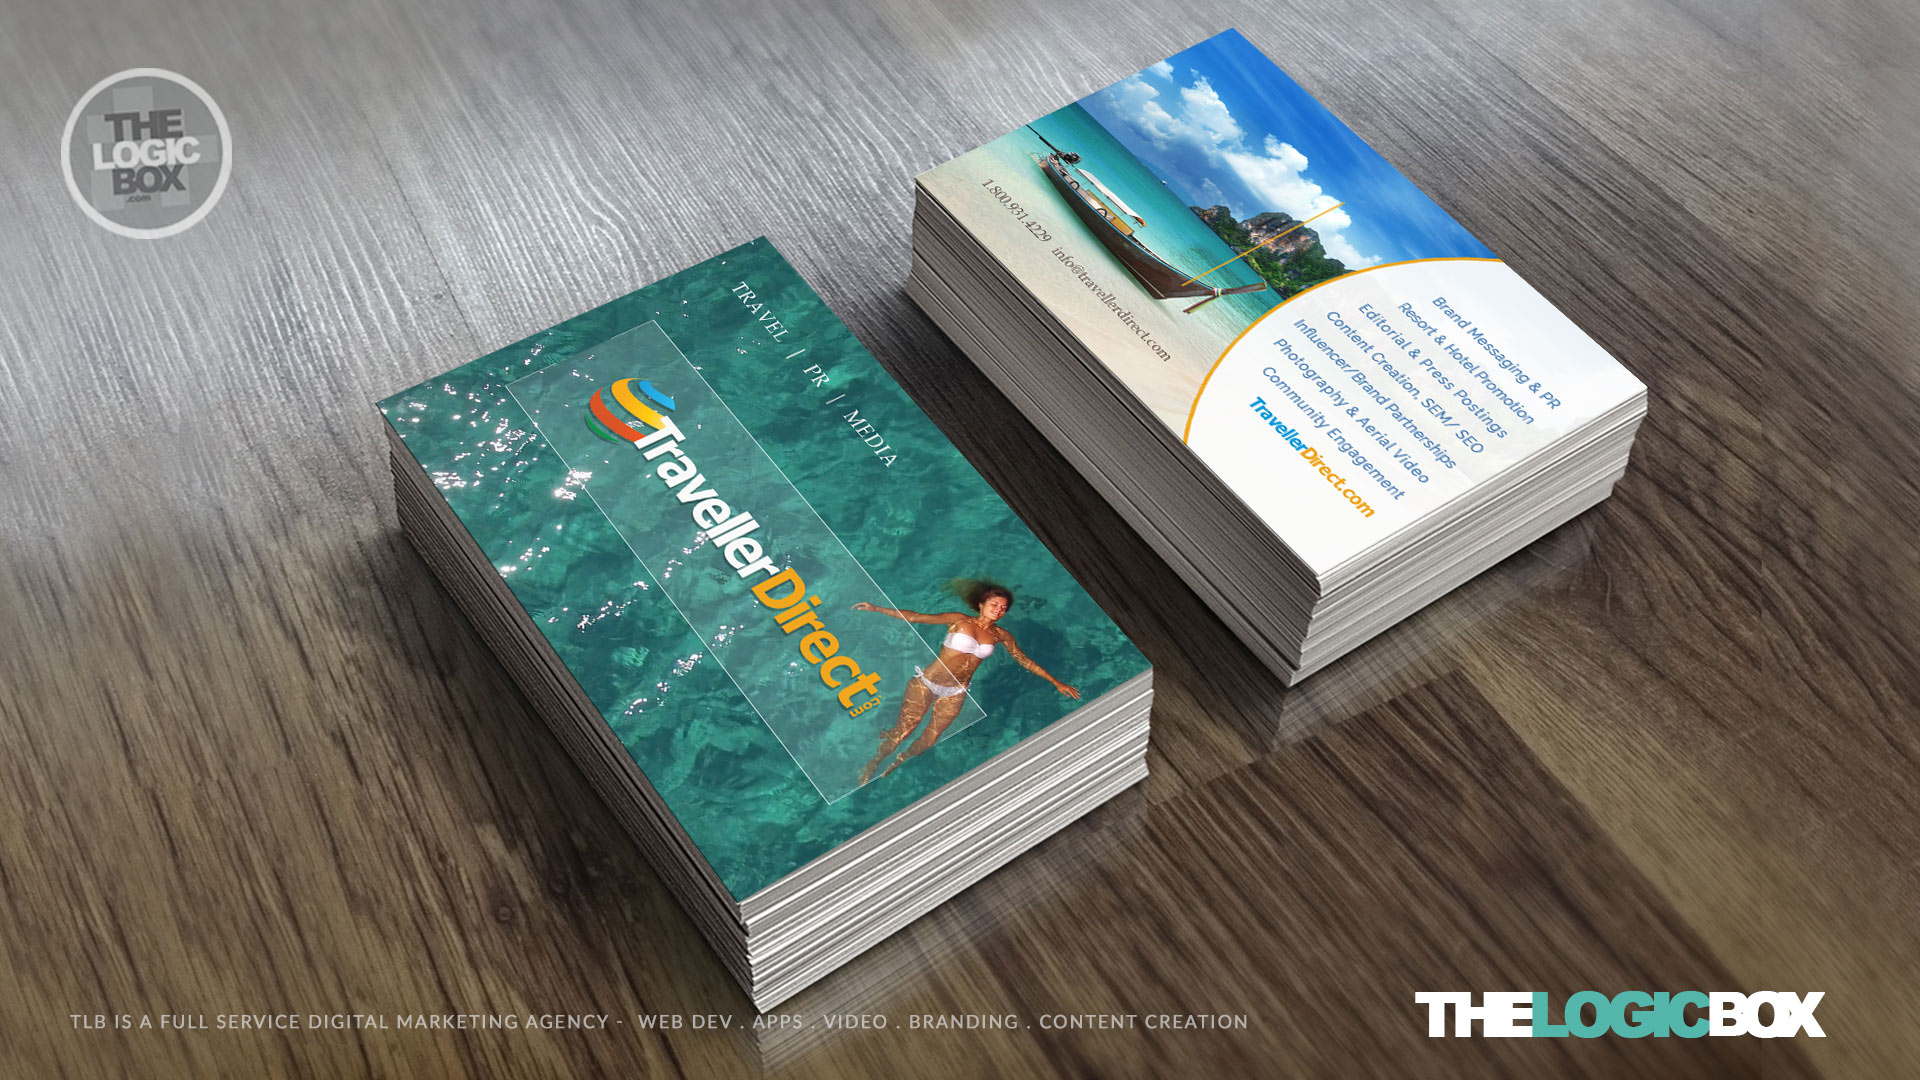 Business-Card-the-logic-box-agency-2-travellerdierct_1